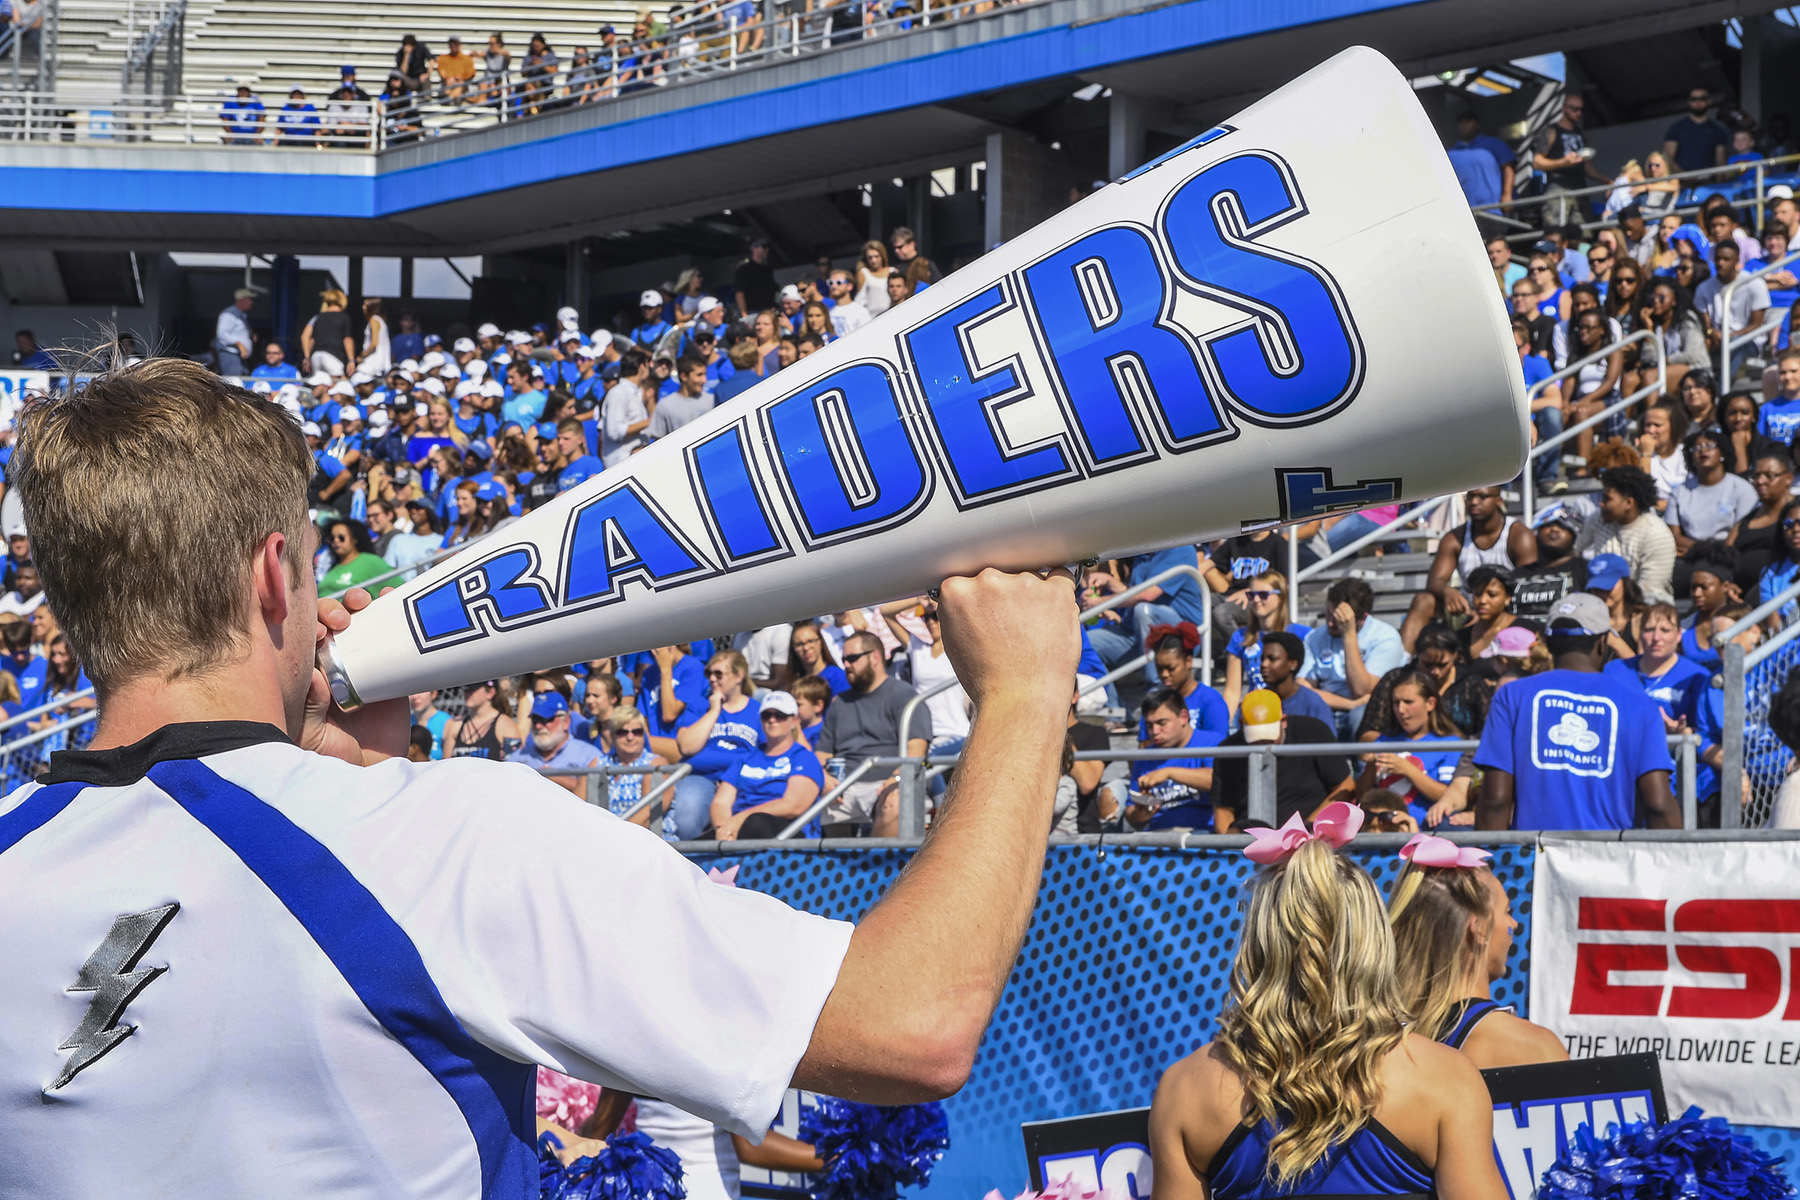 7a7d5126ab77 MTSU announces 2017 Homecoming will be Oct. 7 versus FIU